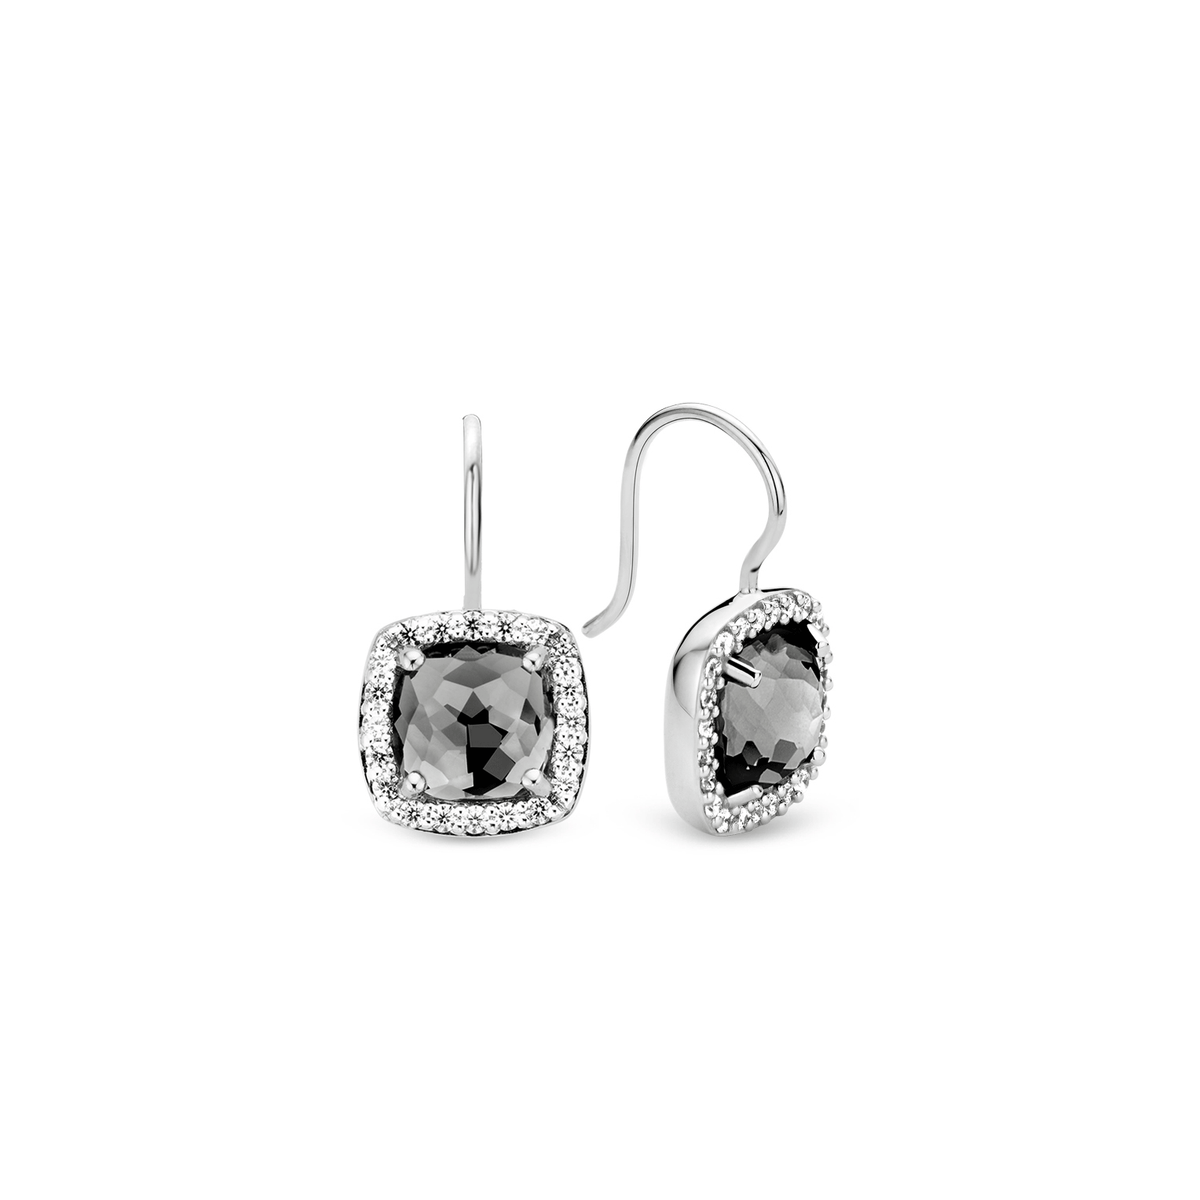 TI SENTO - Milano Earrings 7555BL